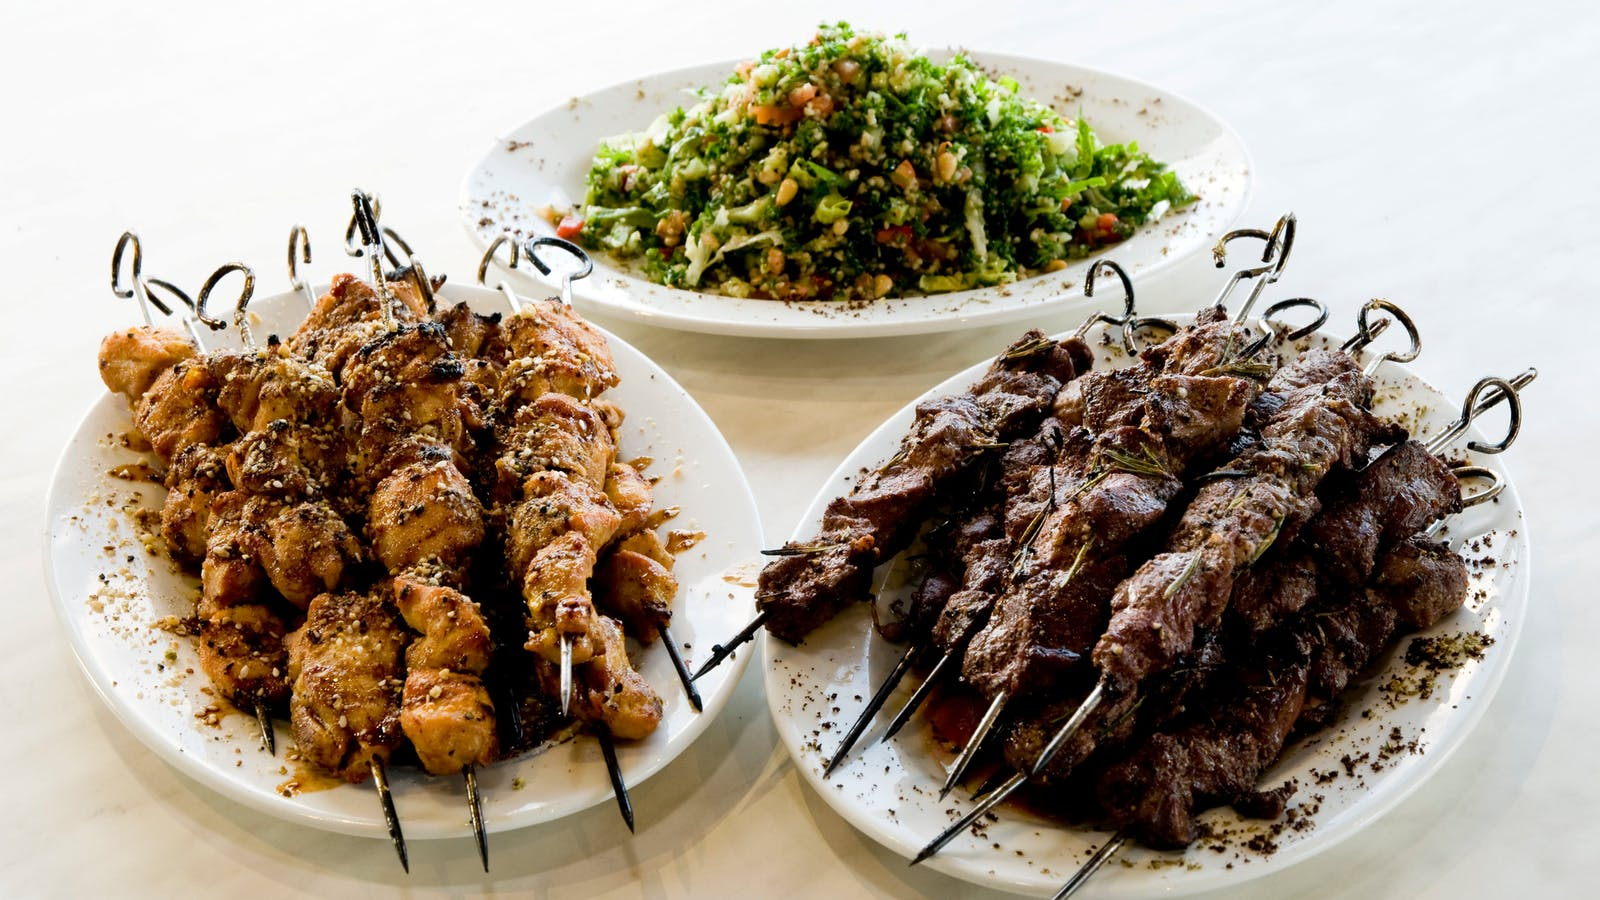 Chicken and Lamb Skewers with Tabouleh